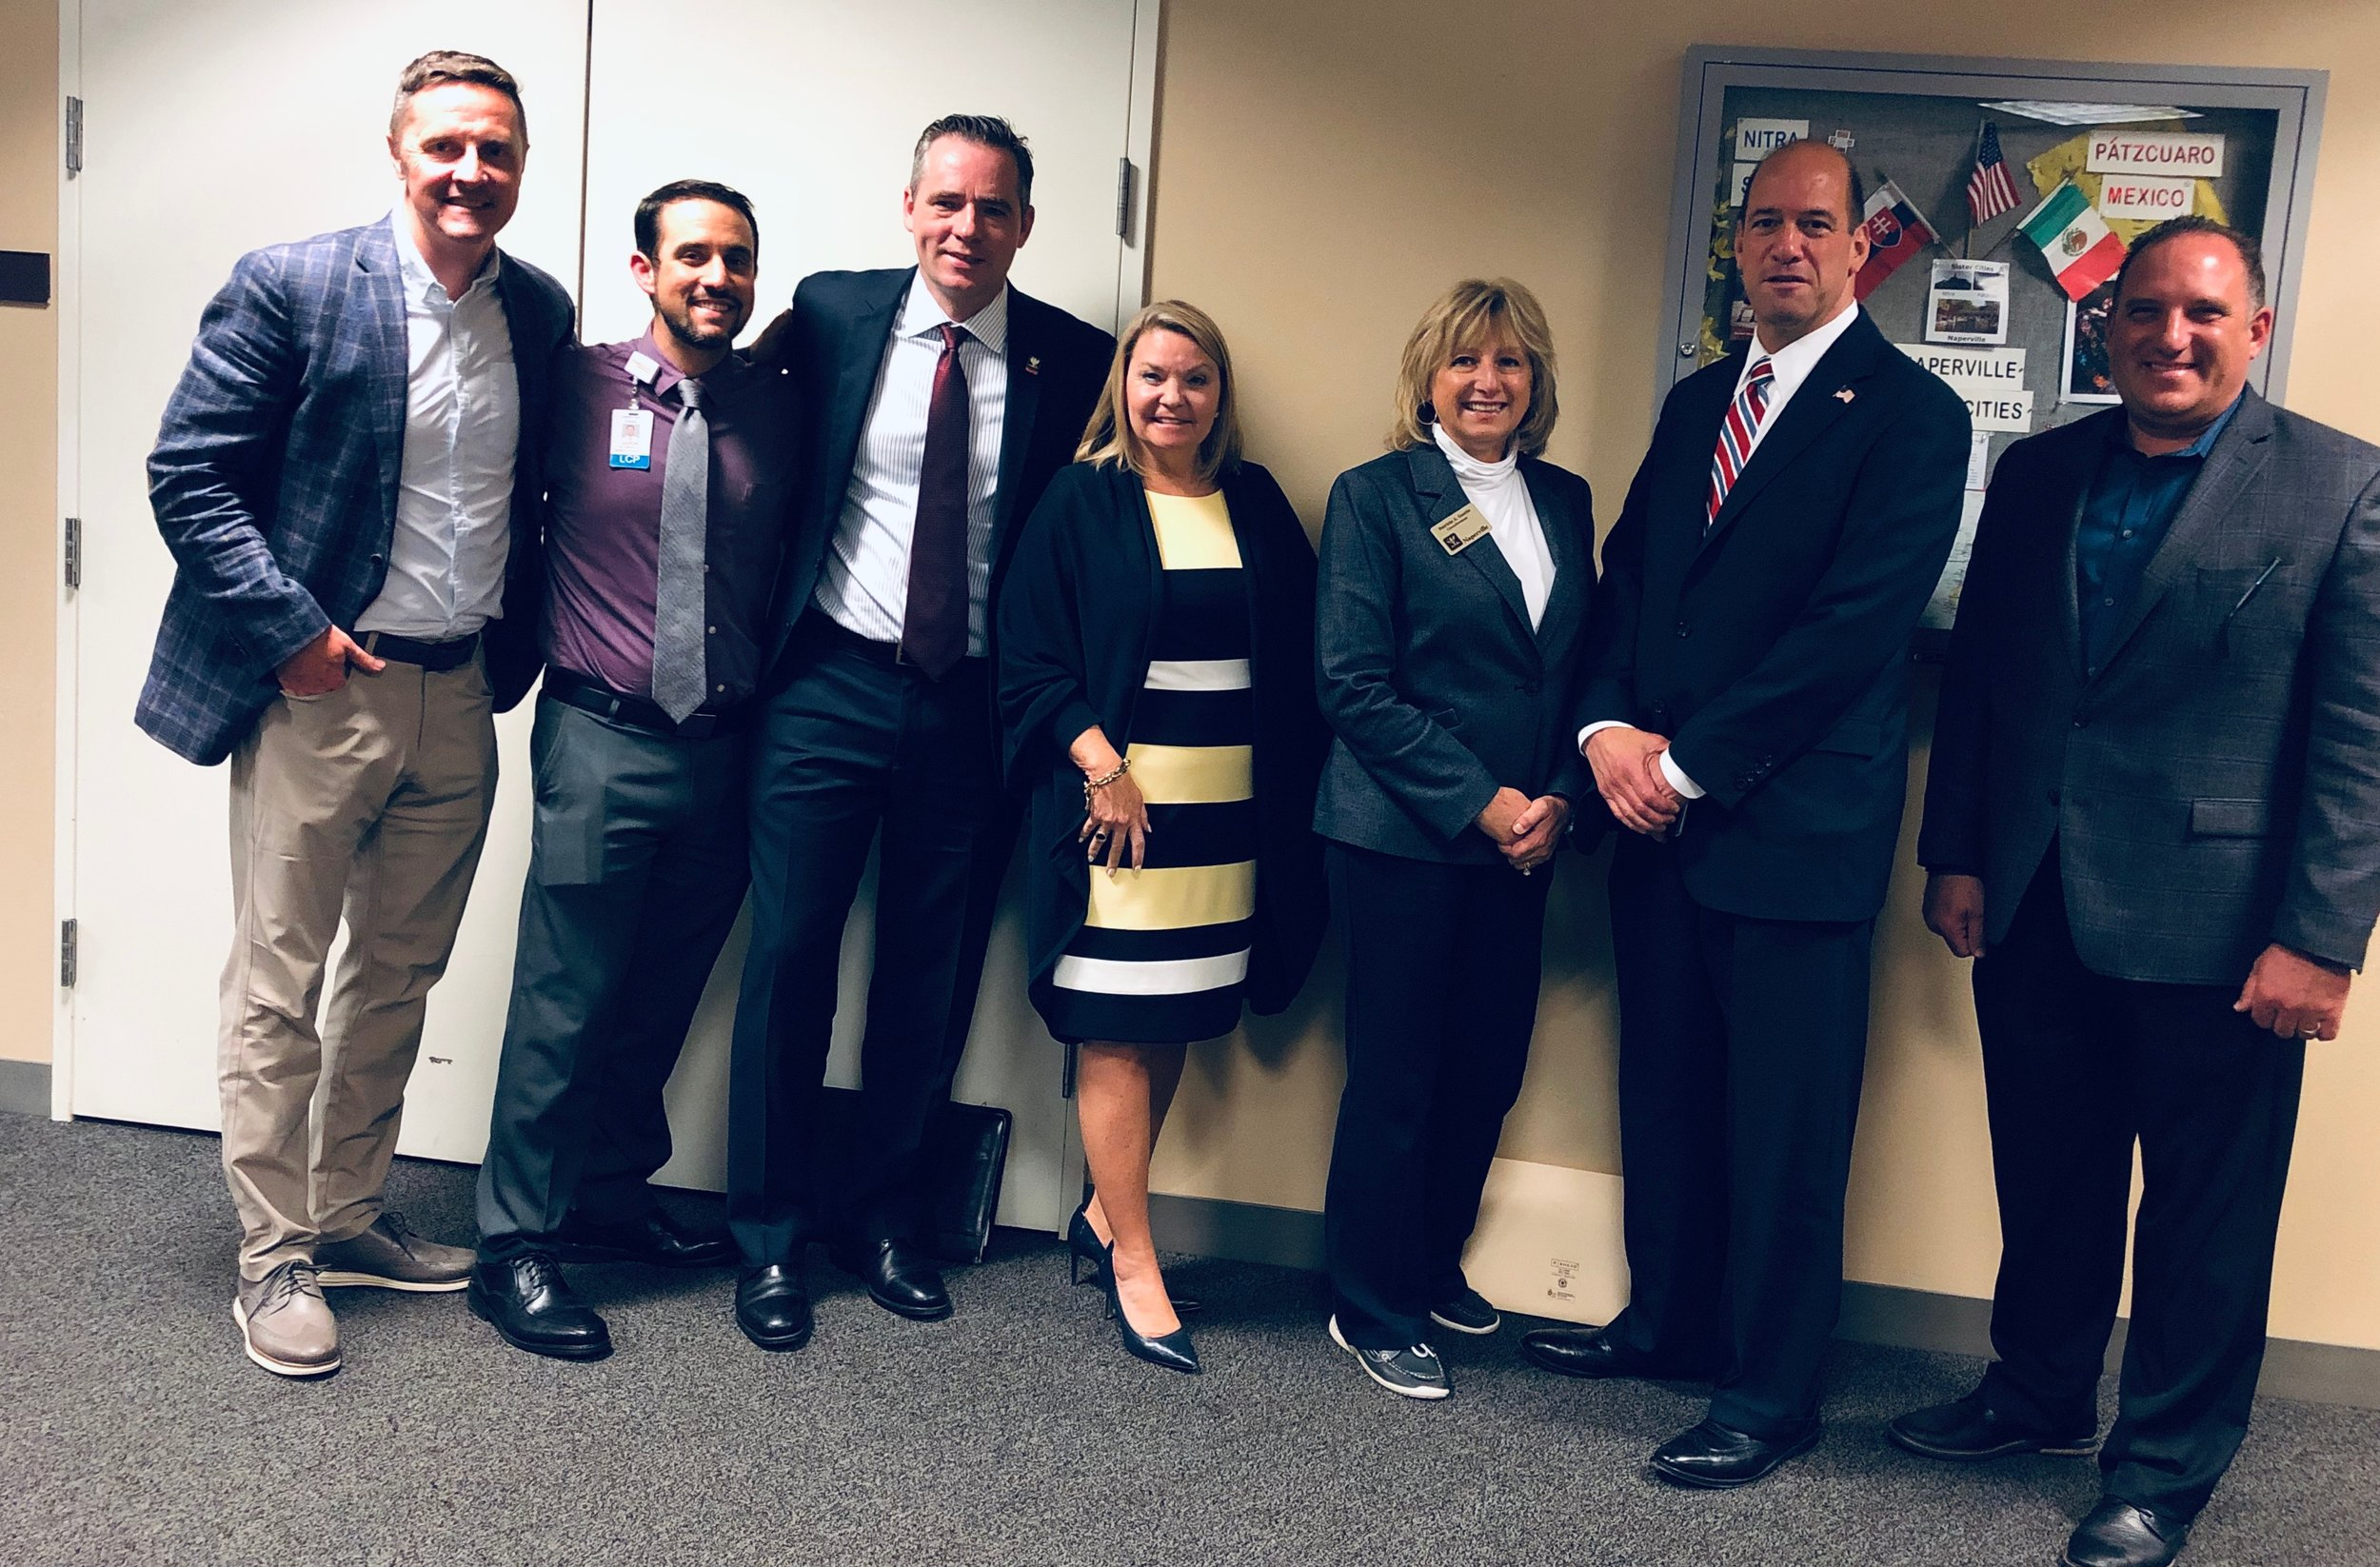 Pictured (L-R): Matthew Quinn - LCPC at Rosecrance; Aaron Weiner - psychologist at Linden Oaks; Kevin Coyne - Naperville City Councilman; Kamala Martinez - Kidsmatter; Patty Gustin - Naperville City Councilwoman; Bob; and Rich Wistocki - retired Naperville Police Detective.